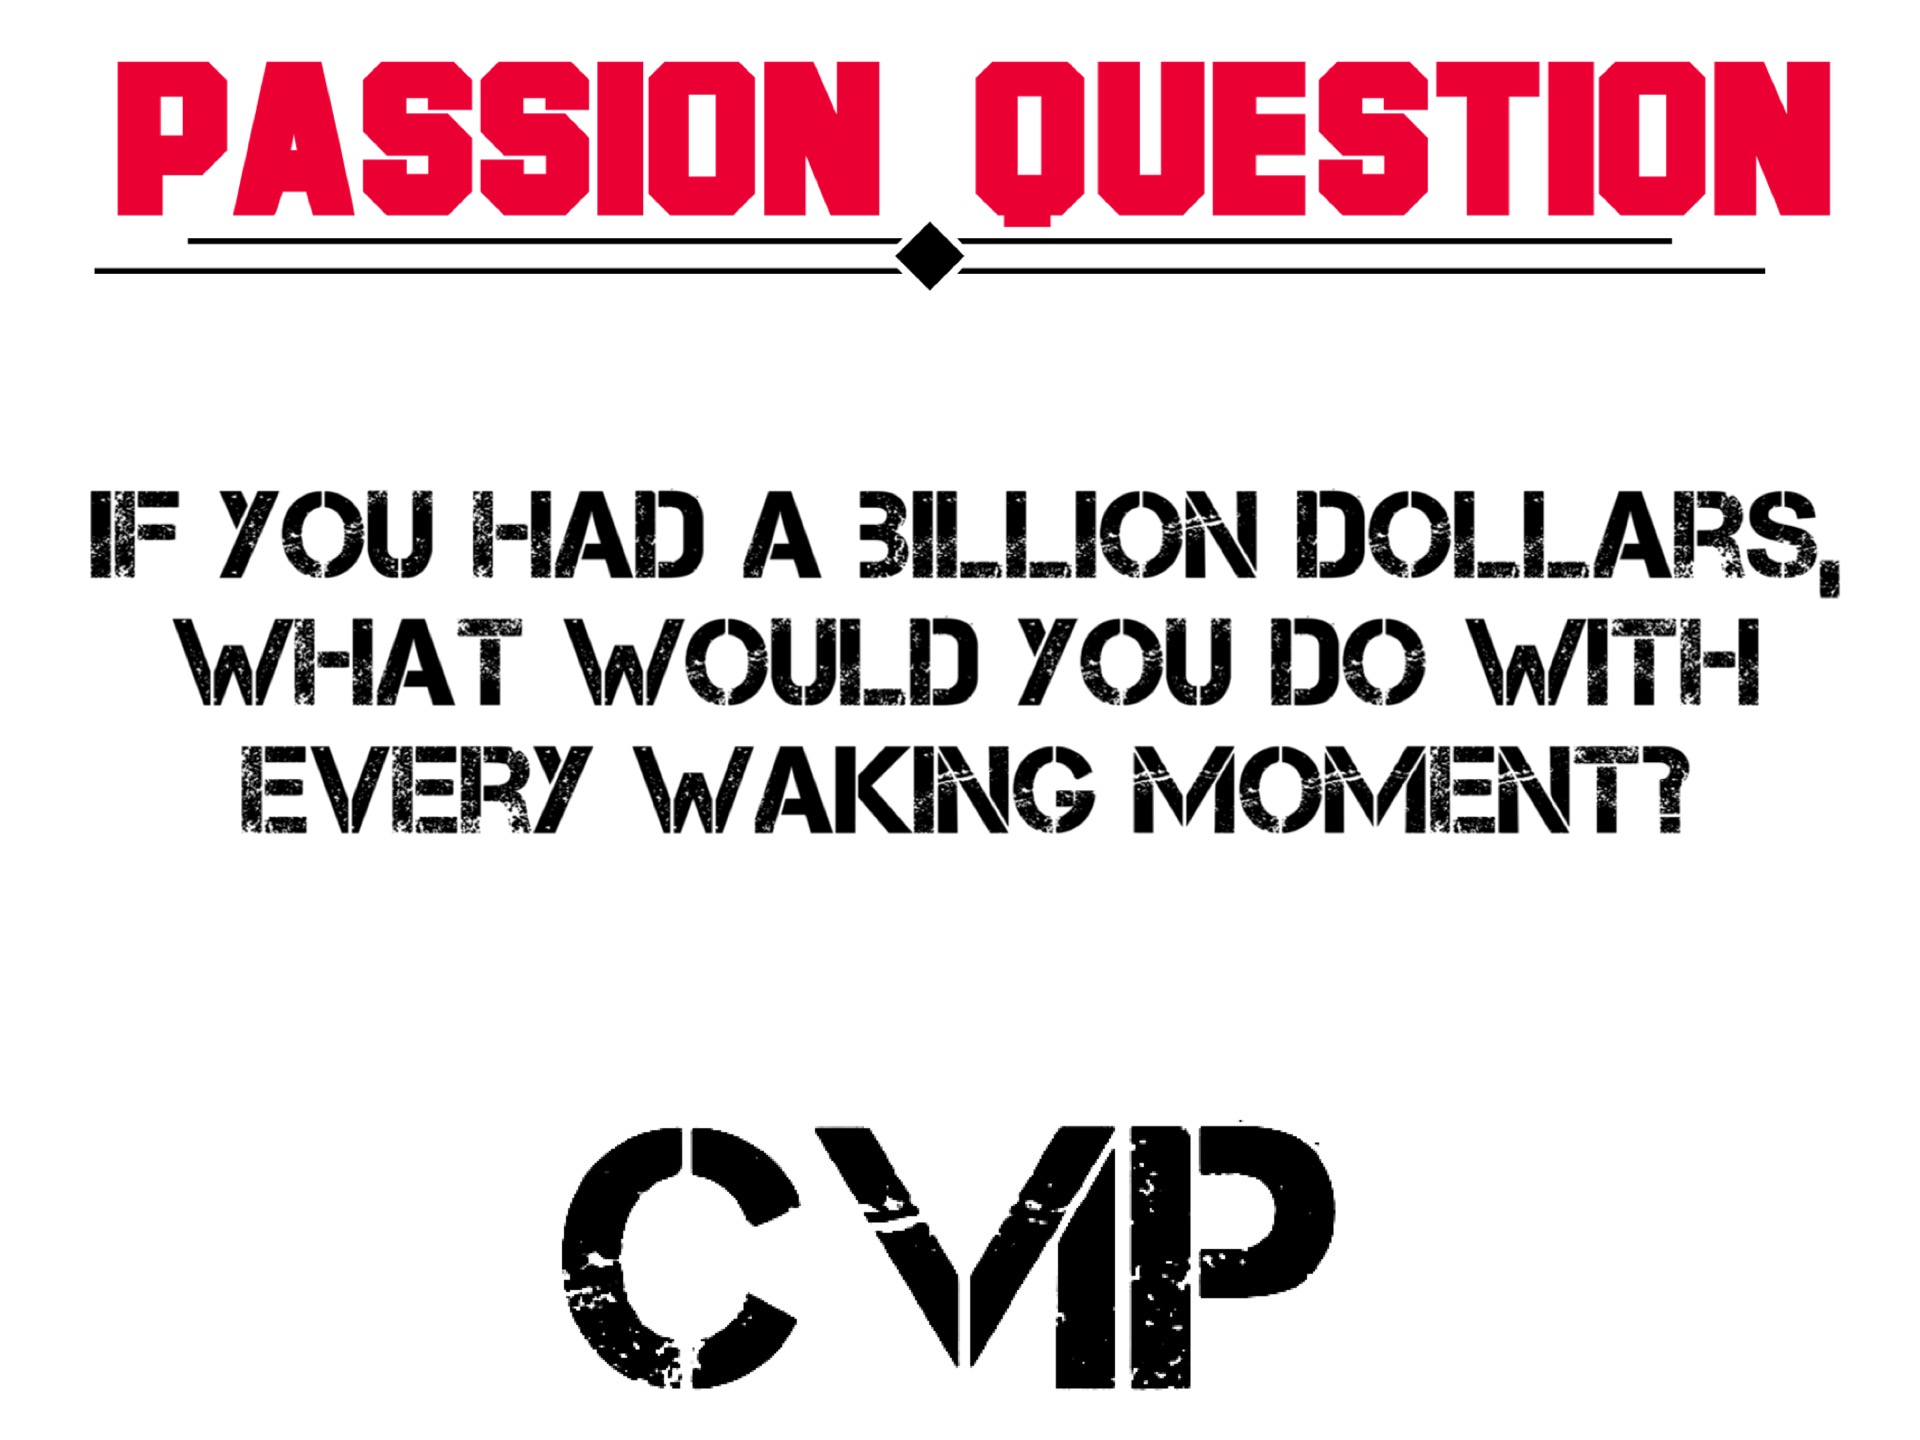 Passion Interview Questions & Answers: